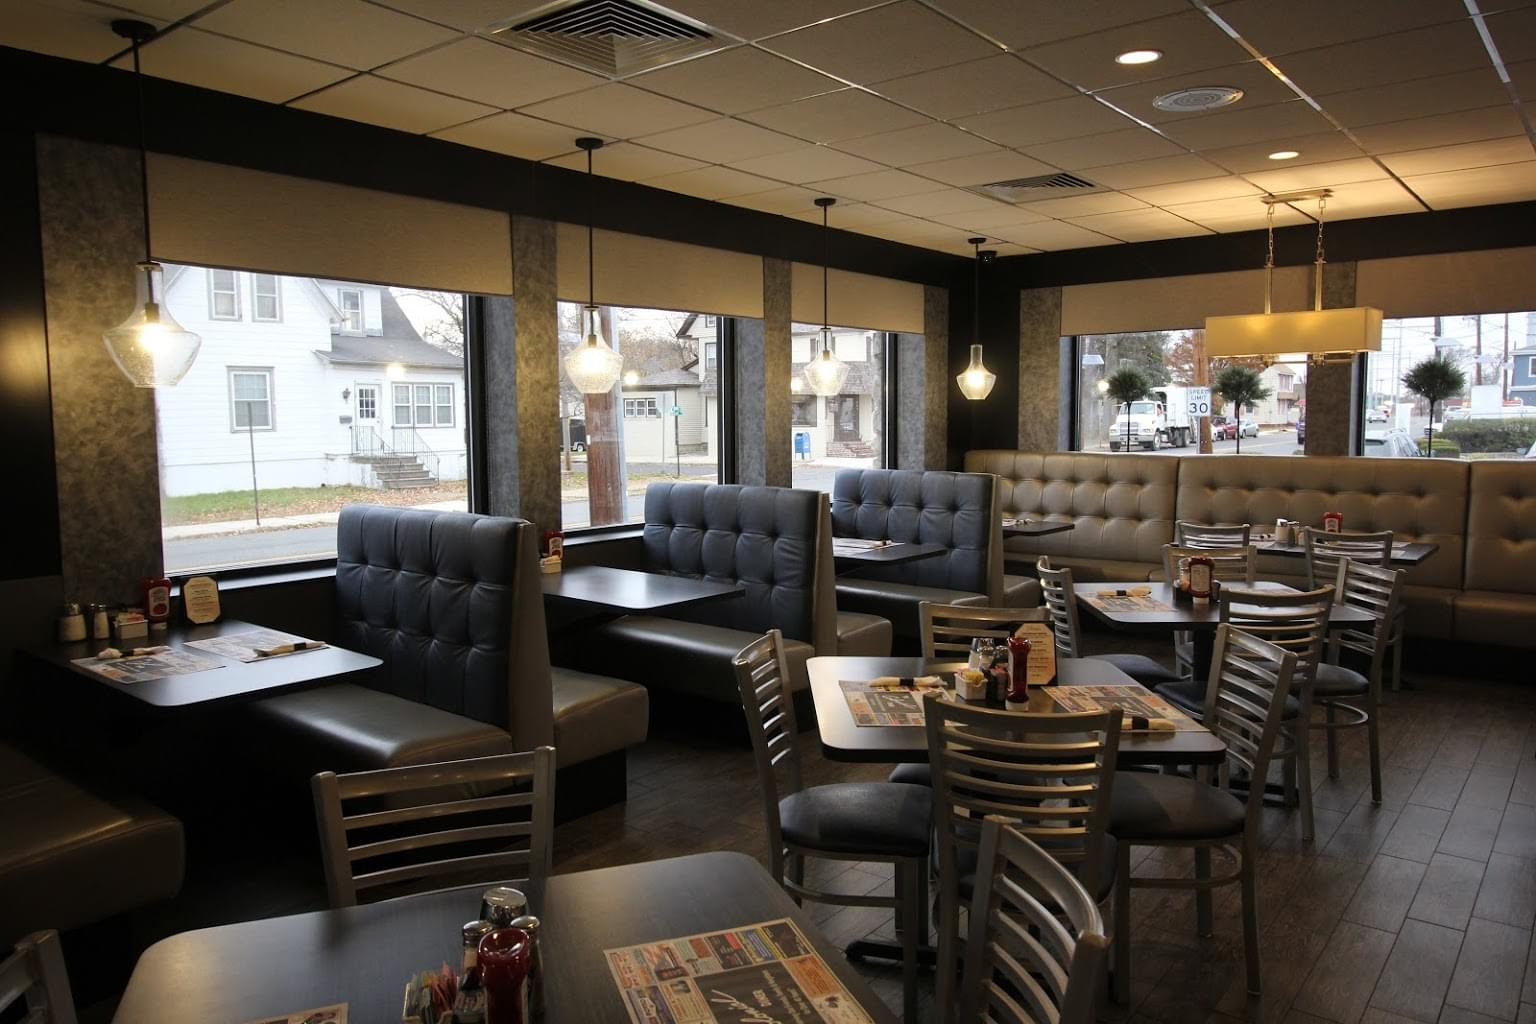 Colonial Diner – Woodbury, NJ – See-Inside Diner